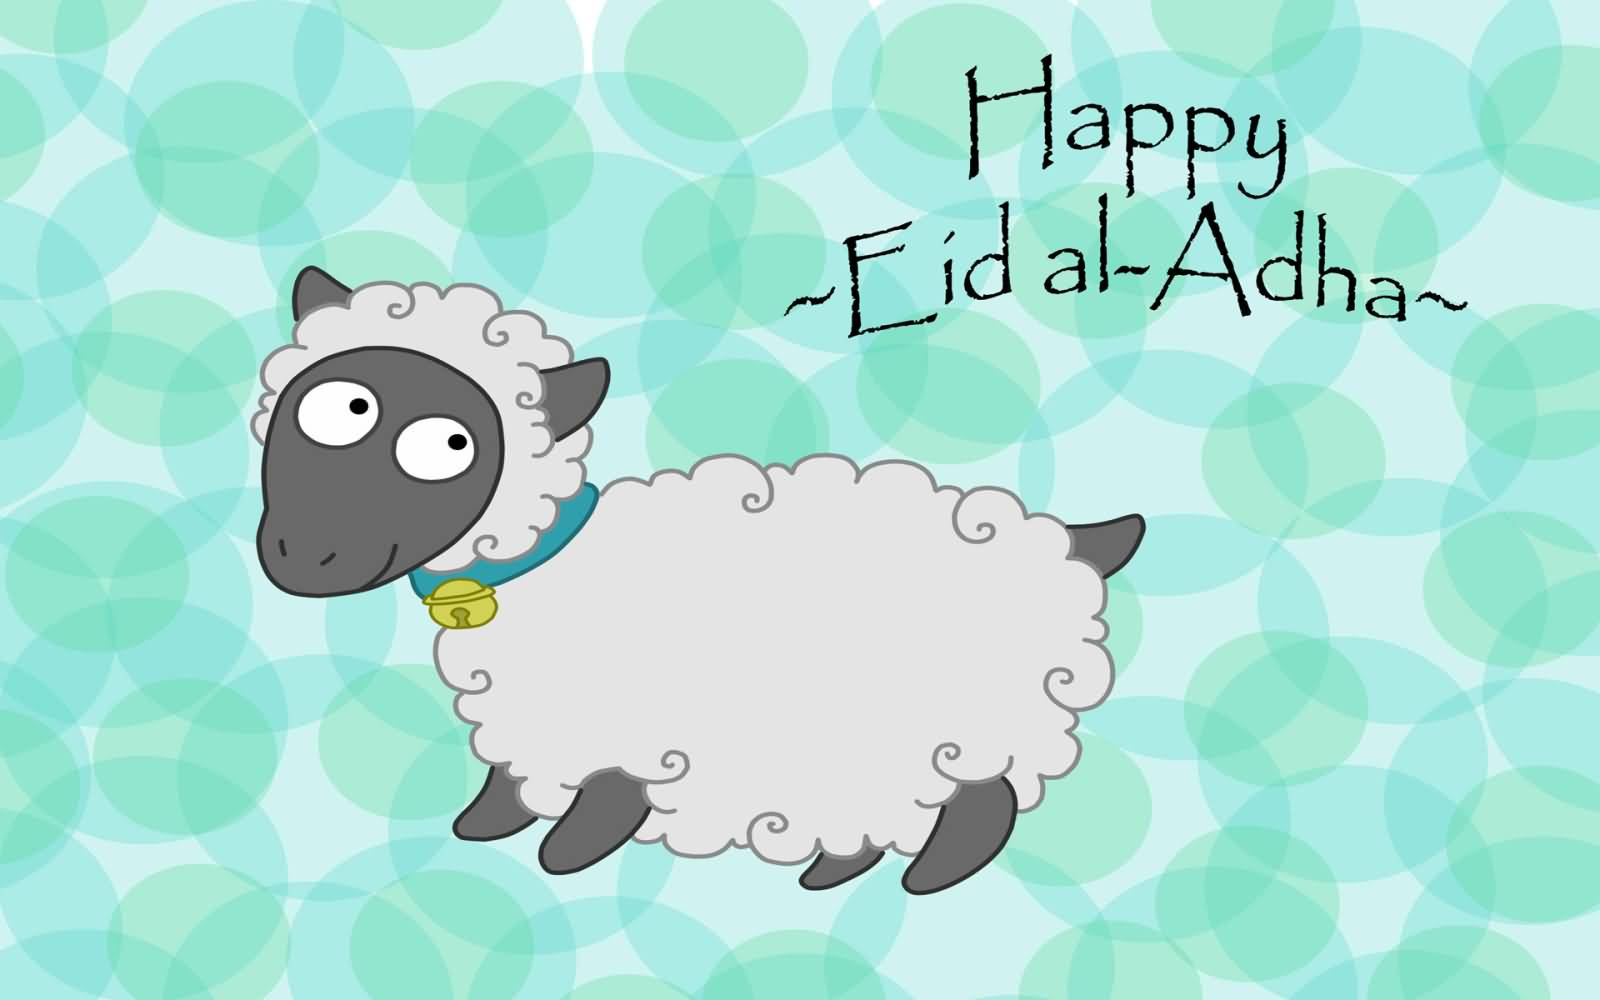 60 wonderful eid al adha wishes pictures and photos happy eid al adha greetings sheep clipart image kristyandbryce Choice Image